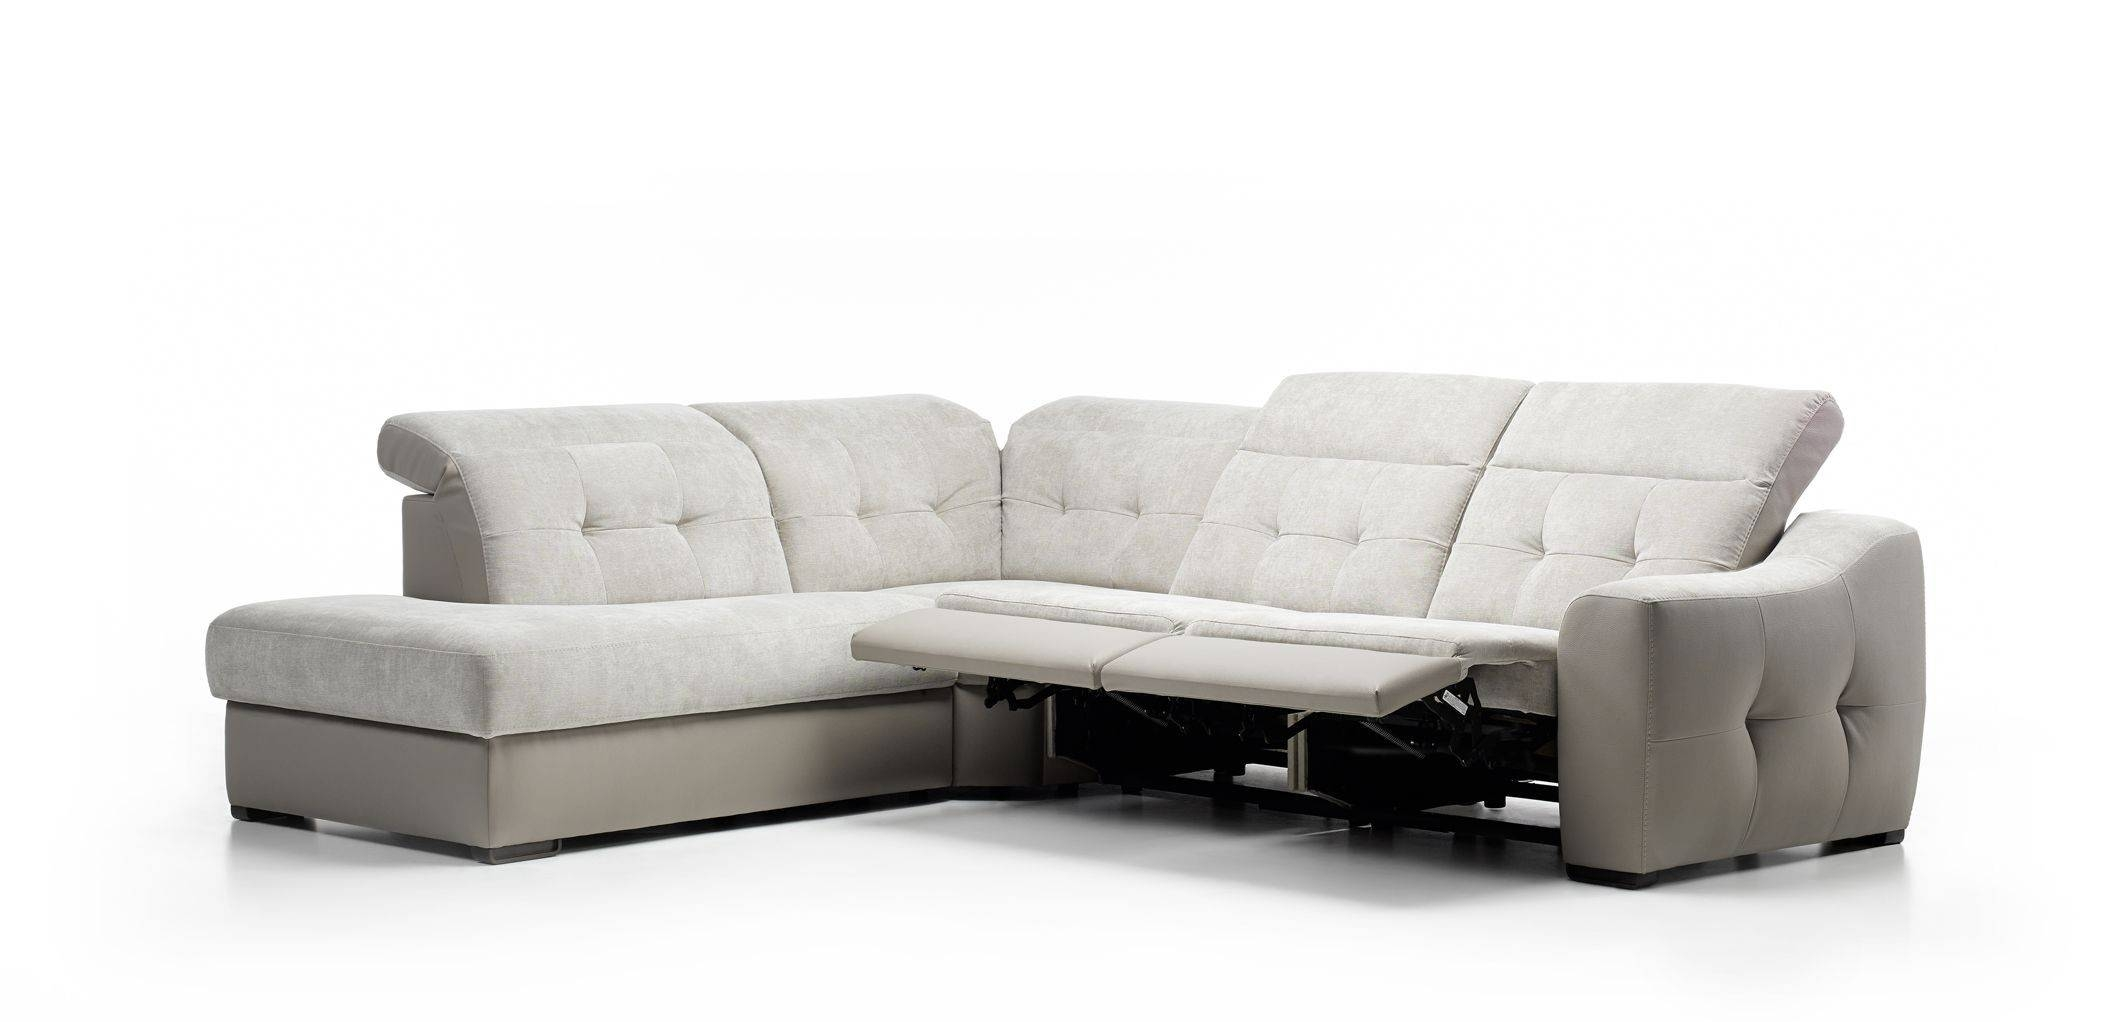 Verführerisch Coole Sofas Beste Wahl Furniture: Create Your Living Room With Cool